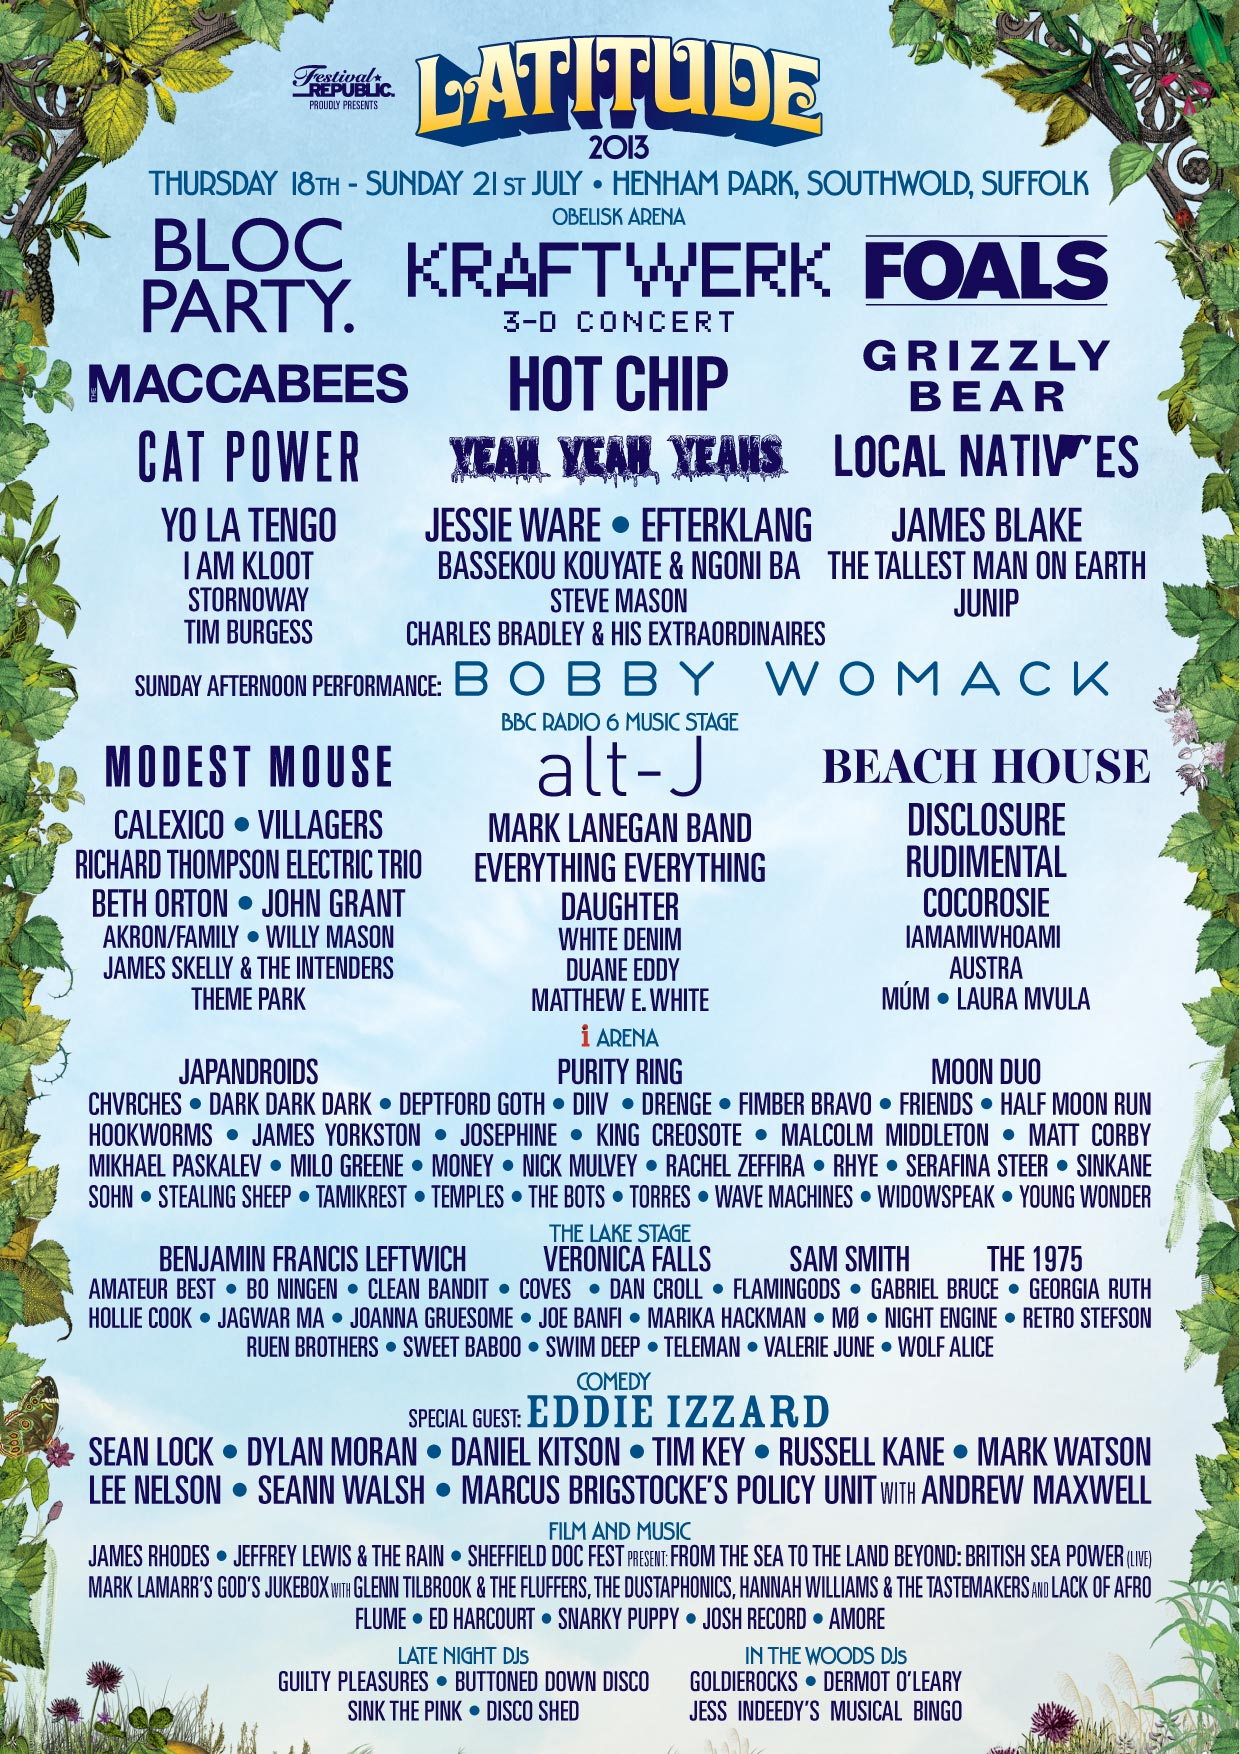 Latitude completes line up with up and coming talent